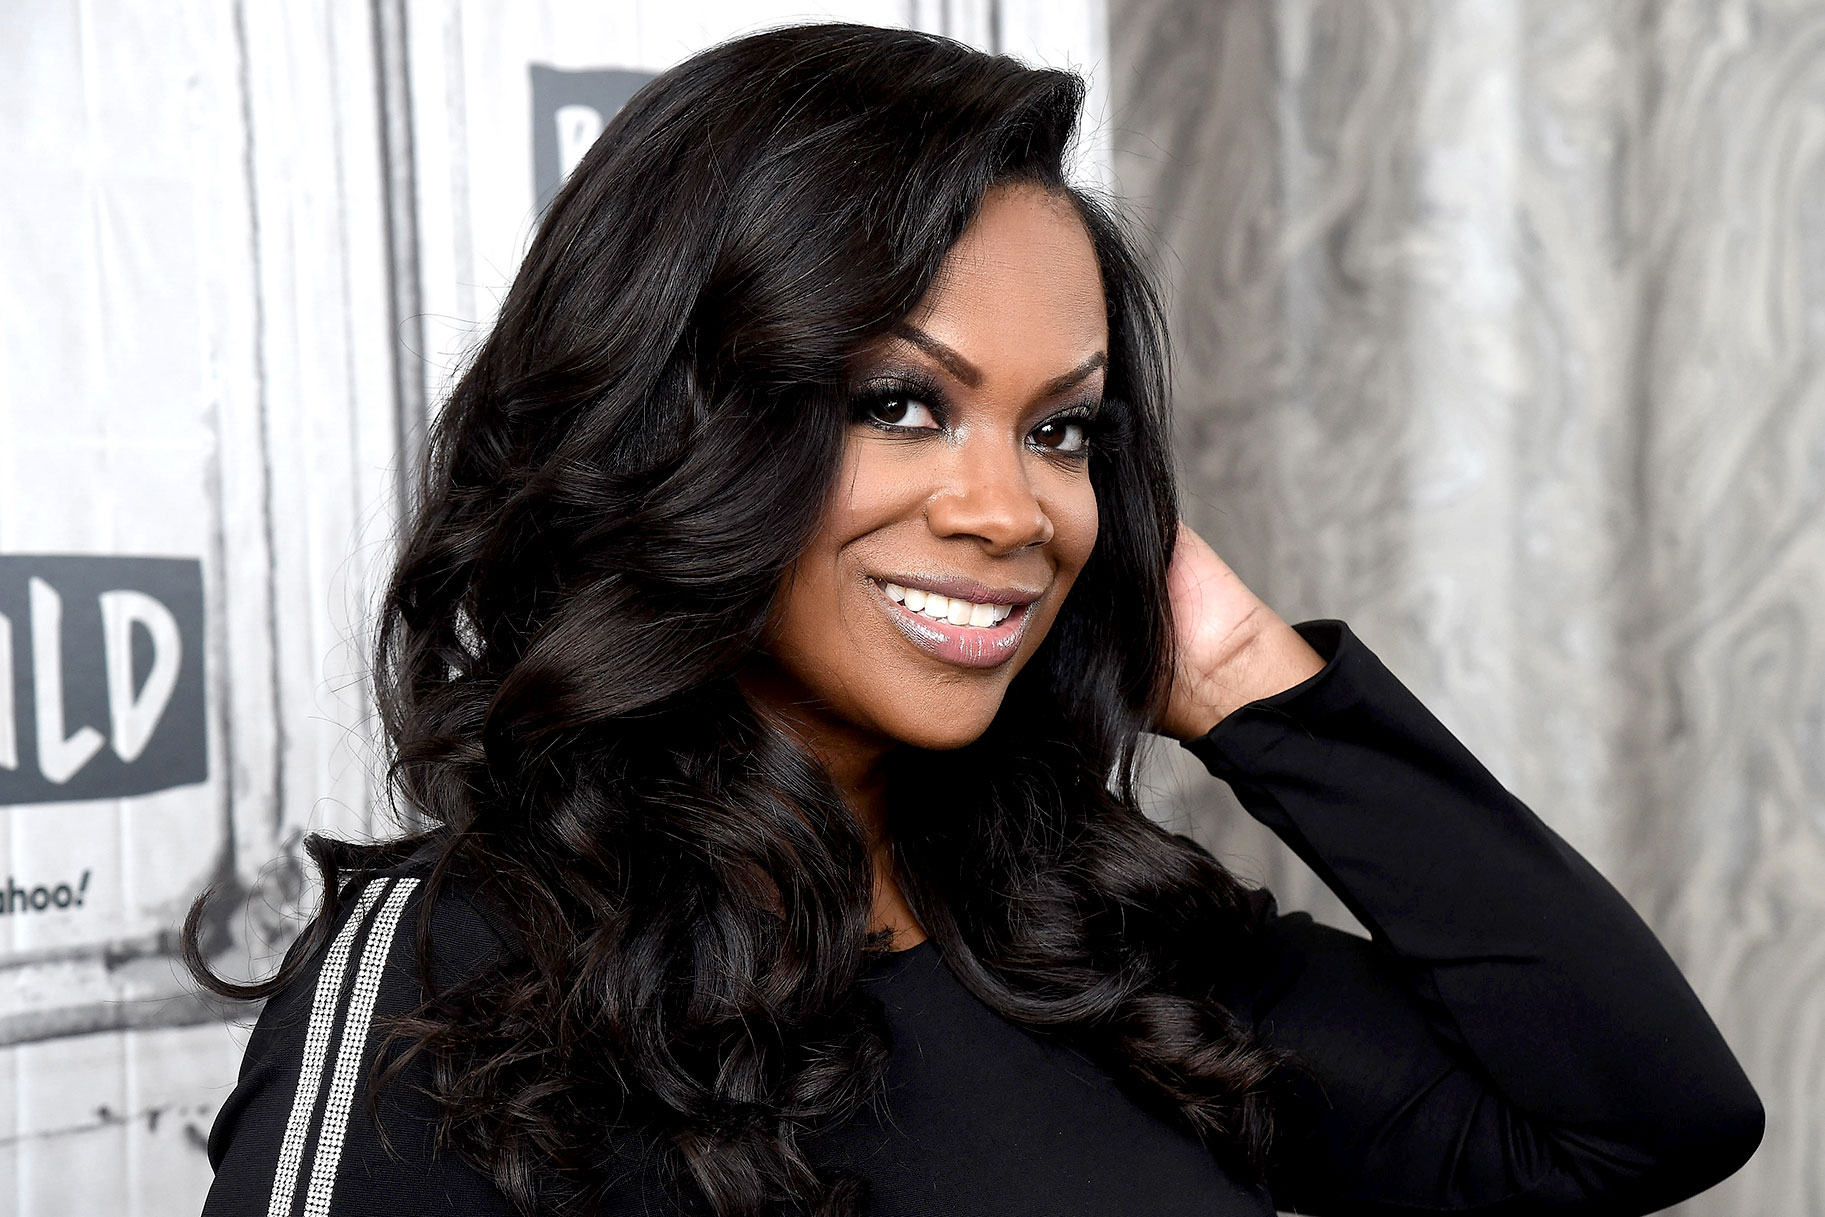 Kandi Burruss Sheer Top Fashion